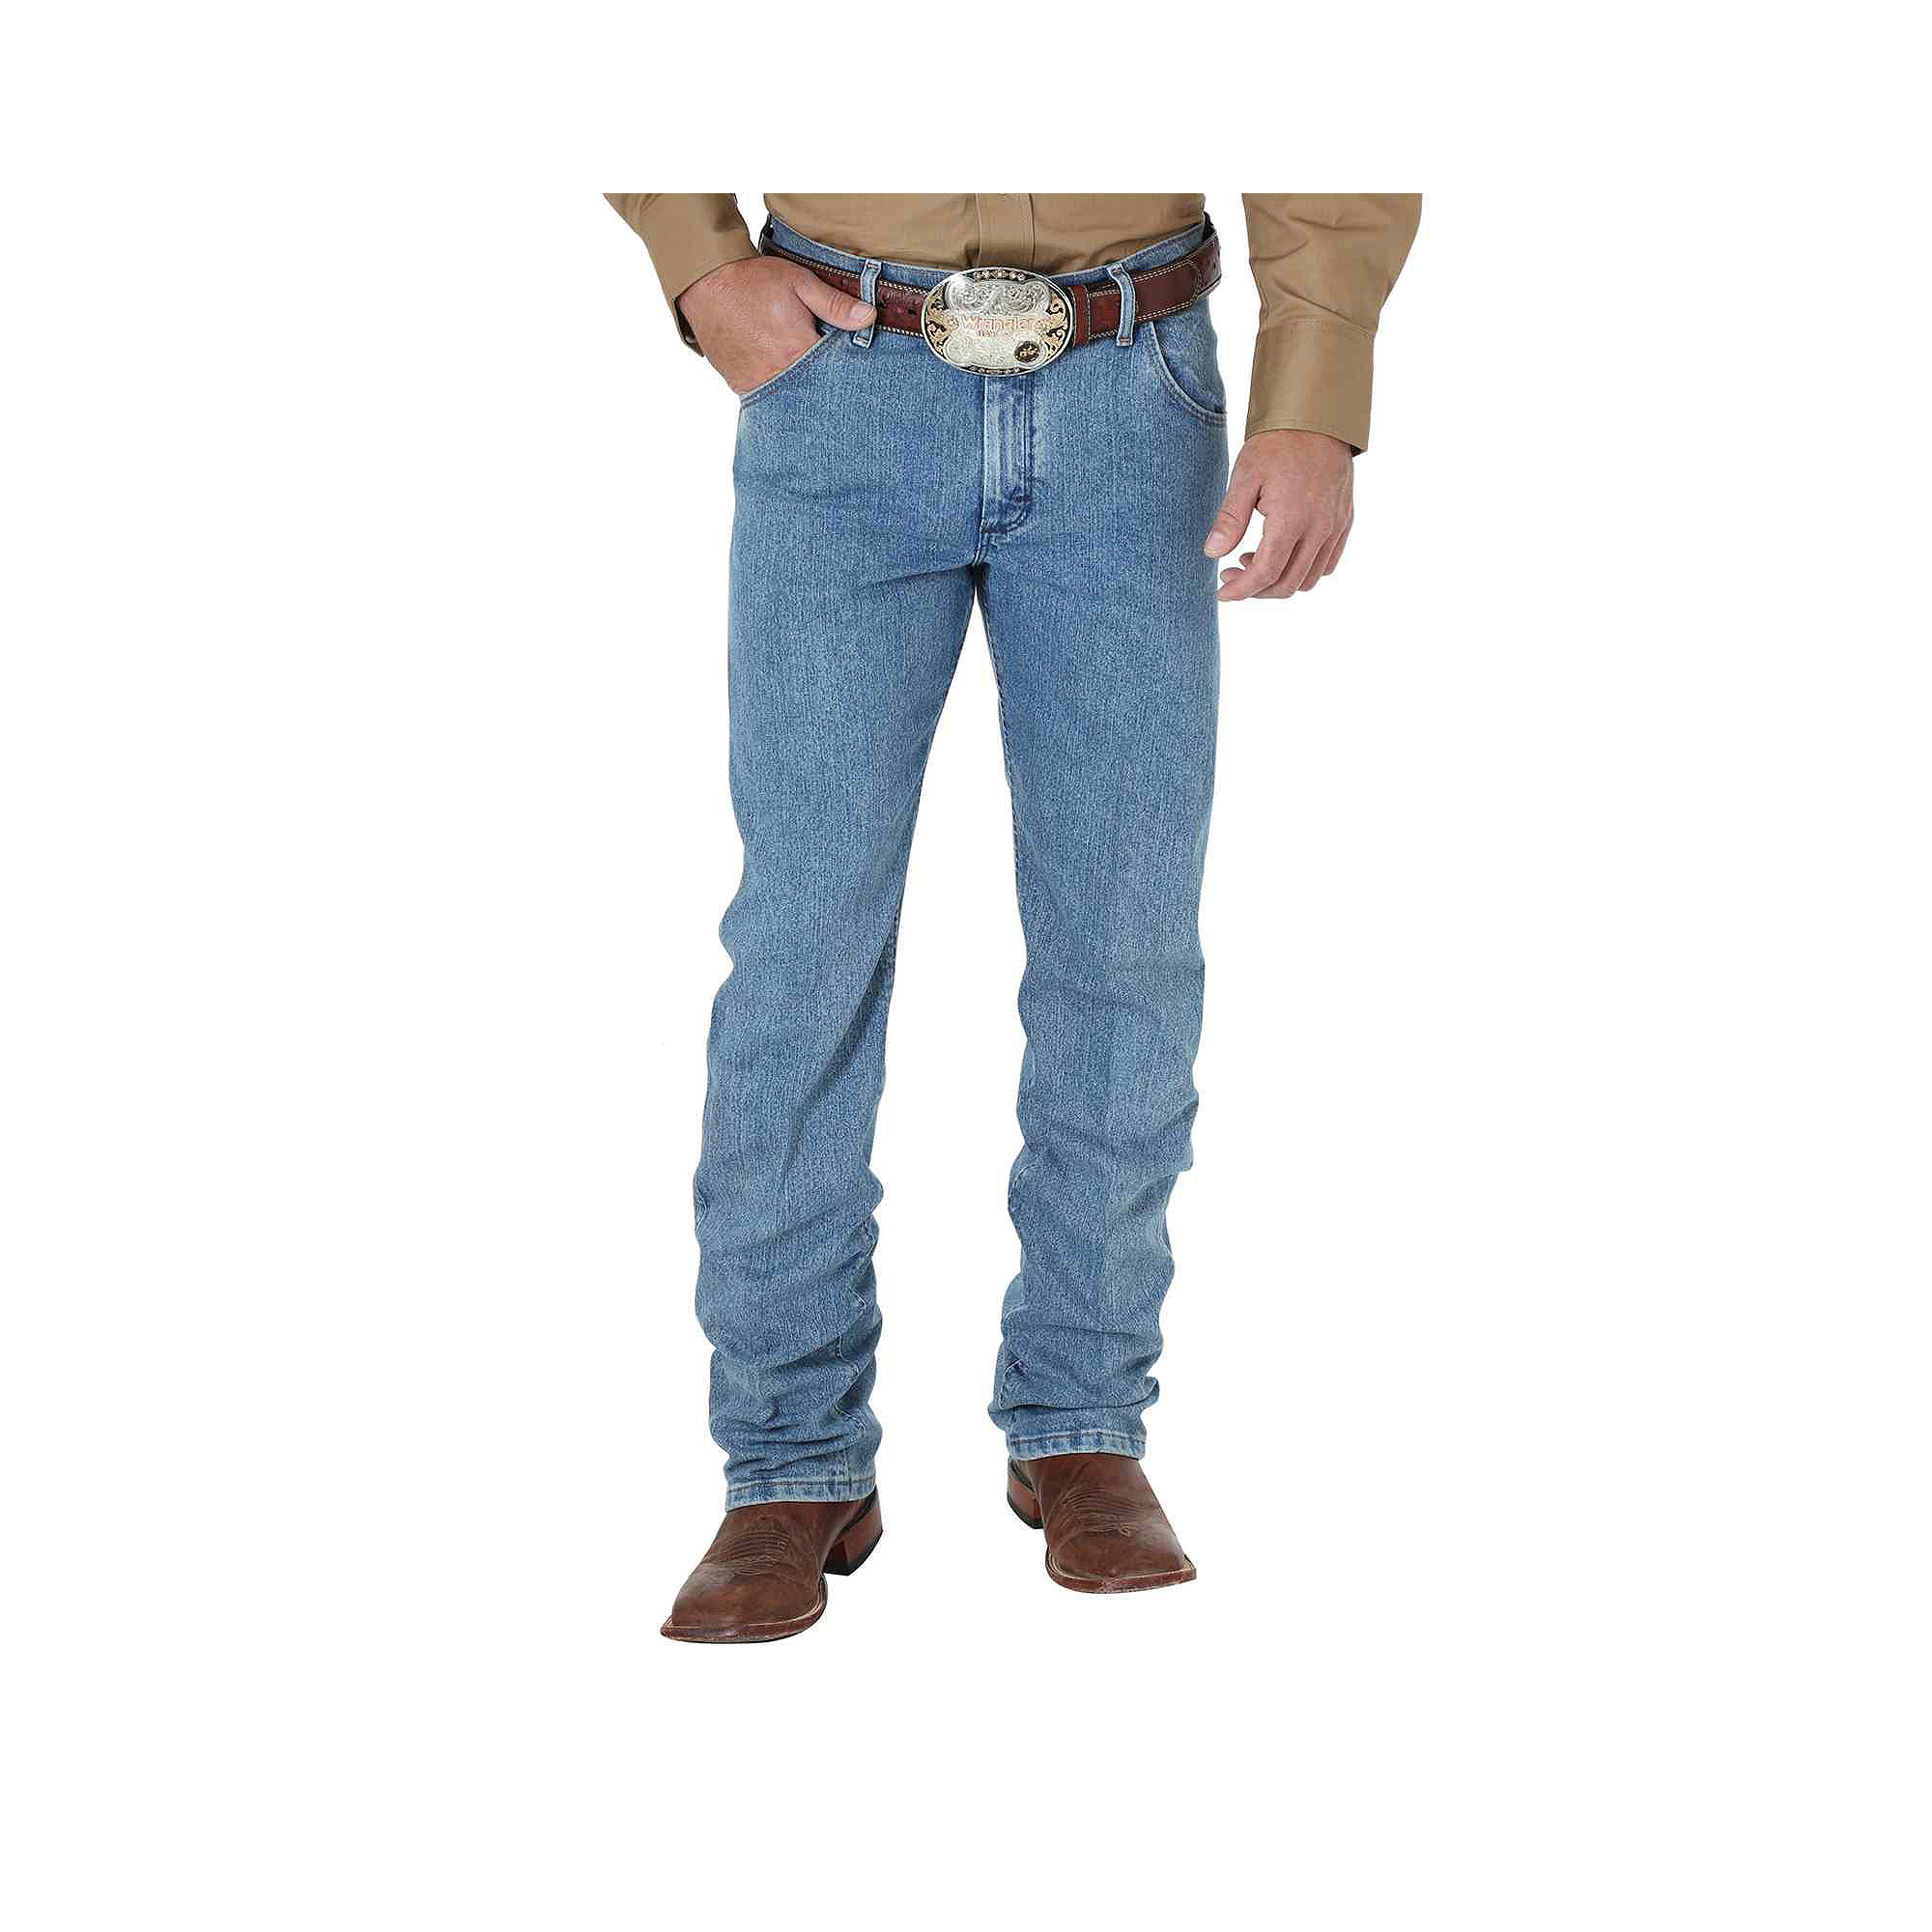 9faa24dabbd ... UPC 040326436305 product image for Wranglers Premium Performance Cowboy  Cut Jeans